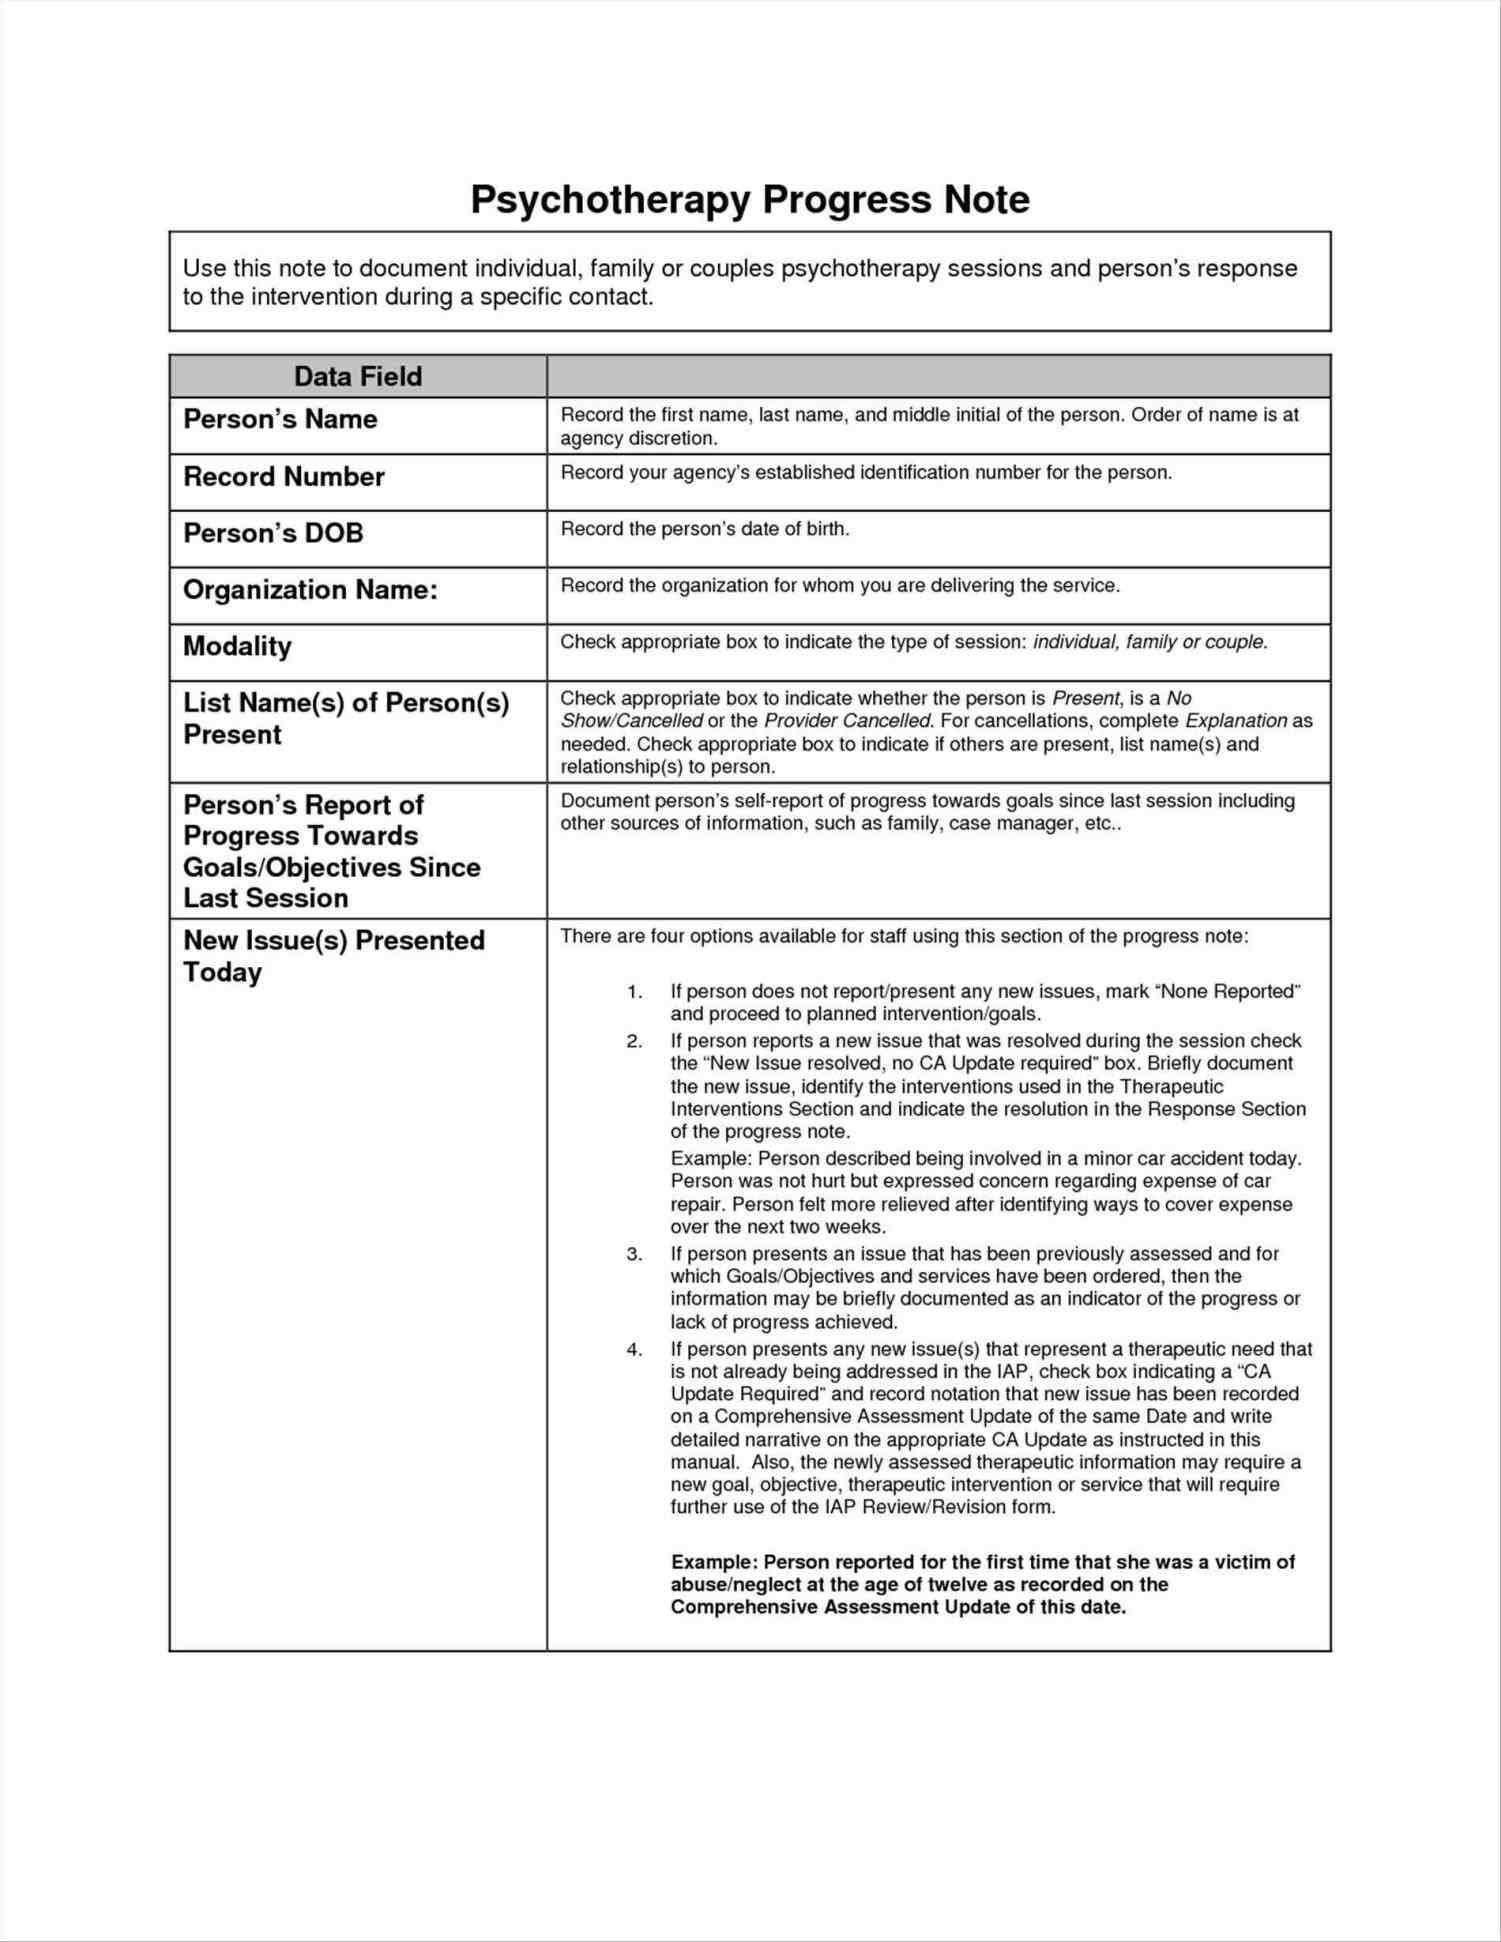 Patient Progress Note Template - Sample Templates - Sample Templates